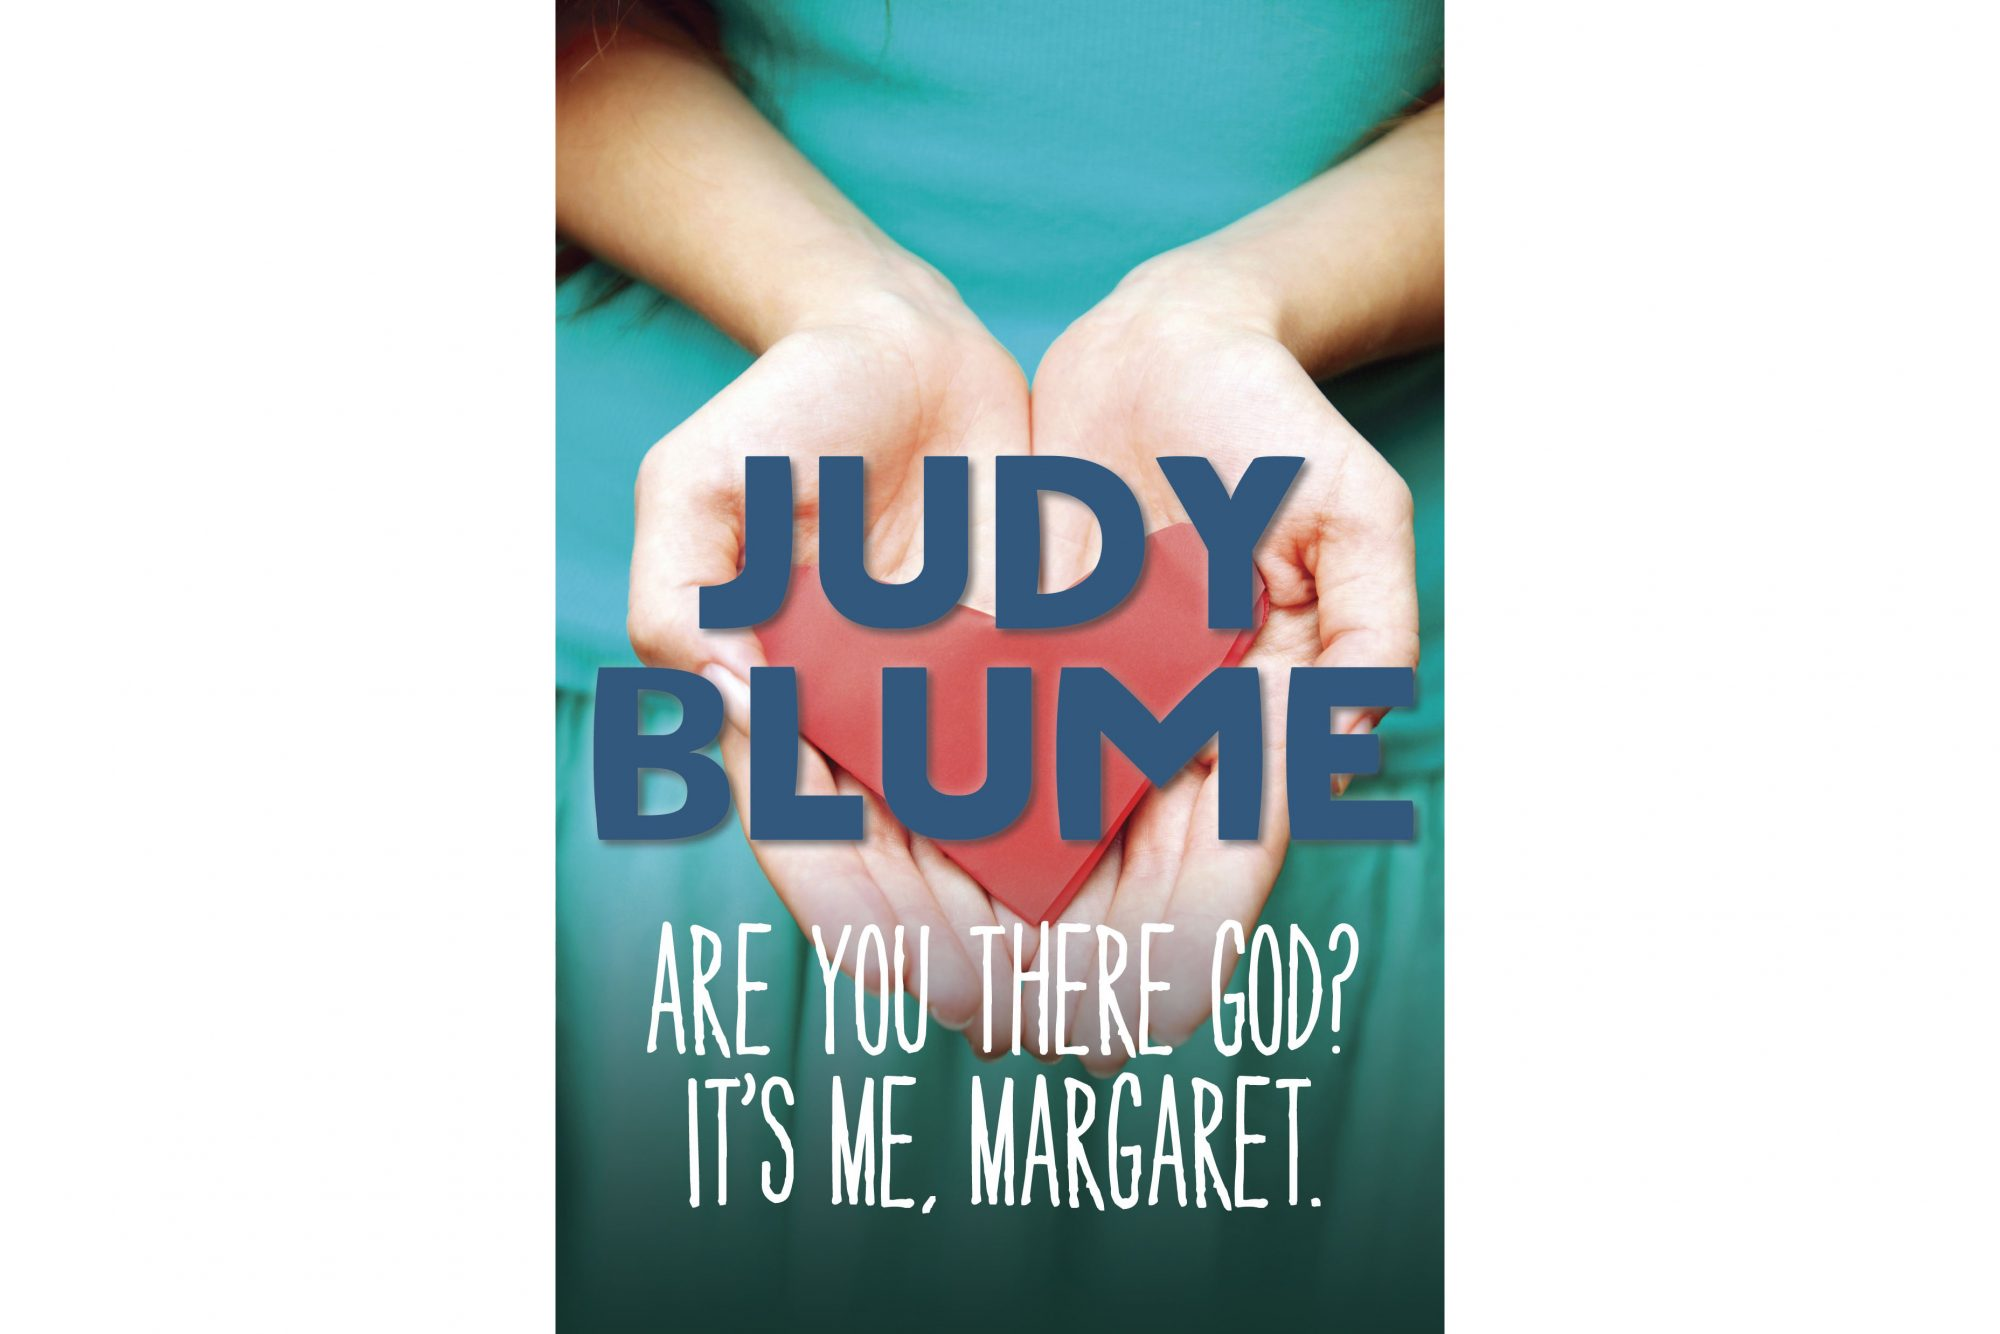 Are You There God? It's Me, Margaret, by Judy Blume